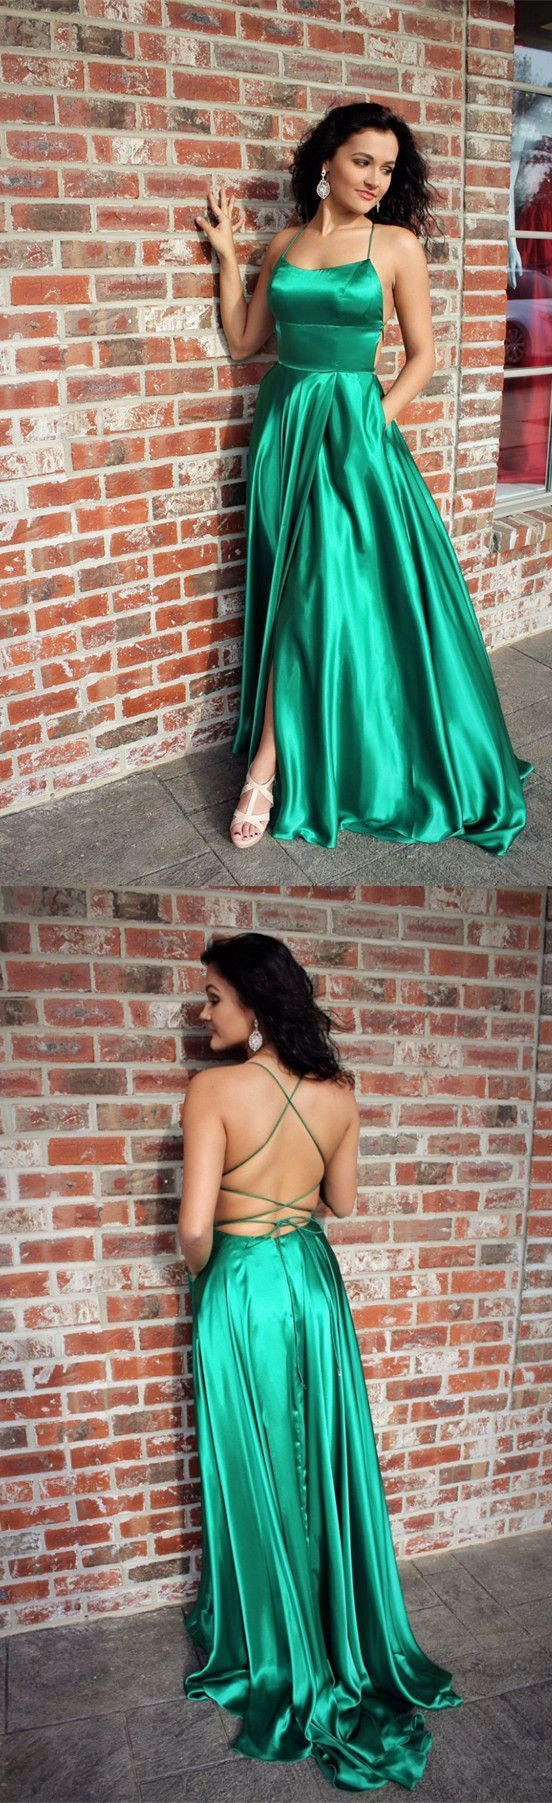 green color prom dress, long prom dress with slit, 2018 prom dress, prom dress with pockets